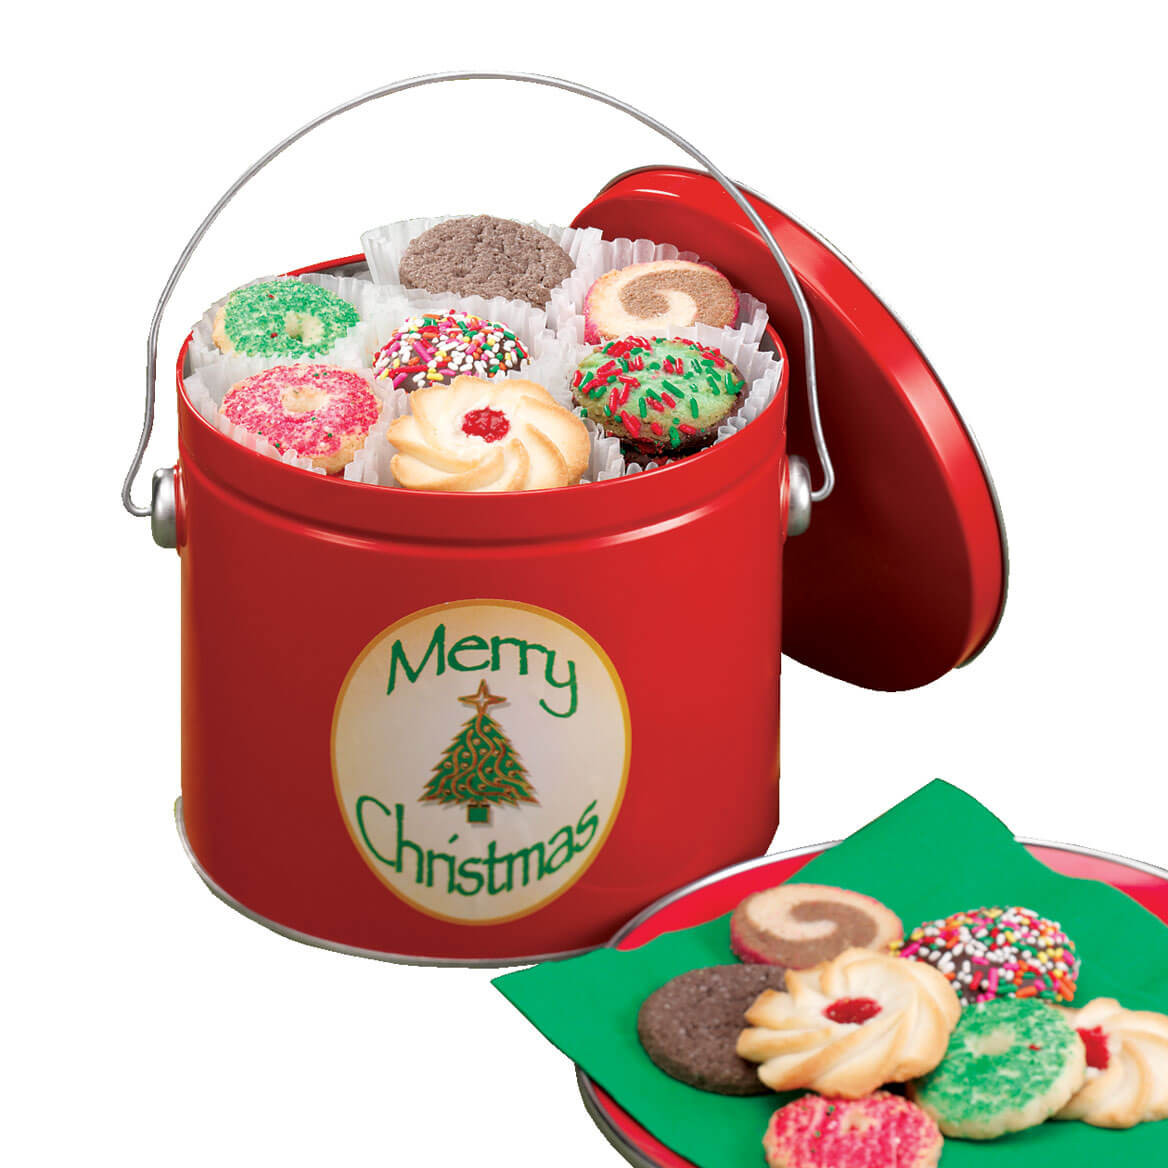 Christmas Cookies In A Tin  Christmas Cookie Tin Christmas Cookies In A Tin Miles